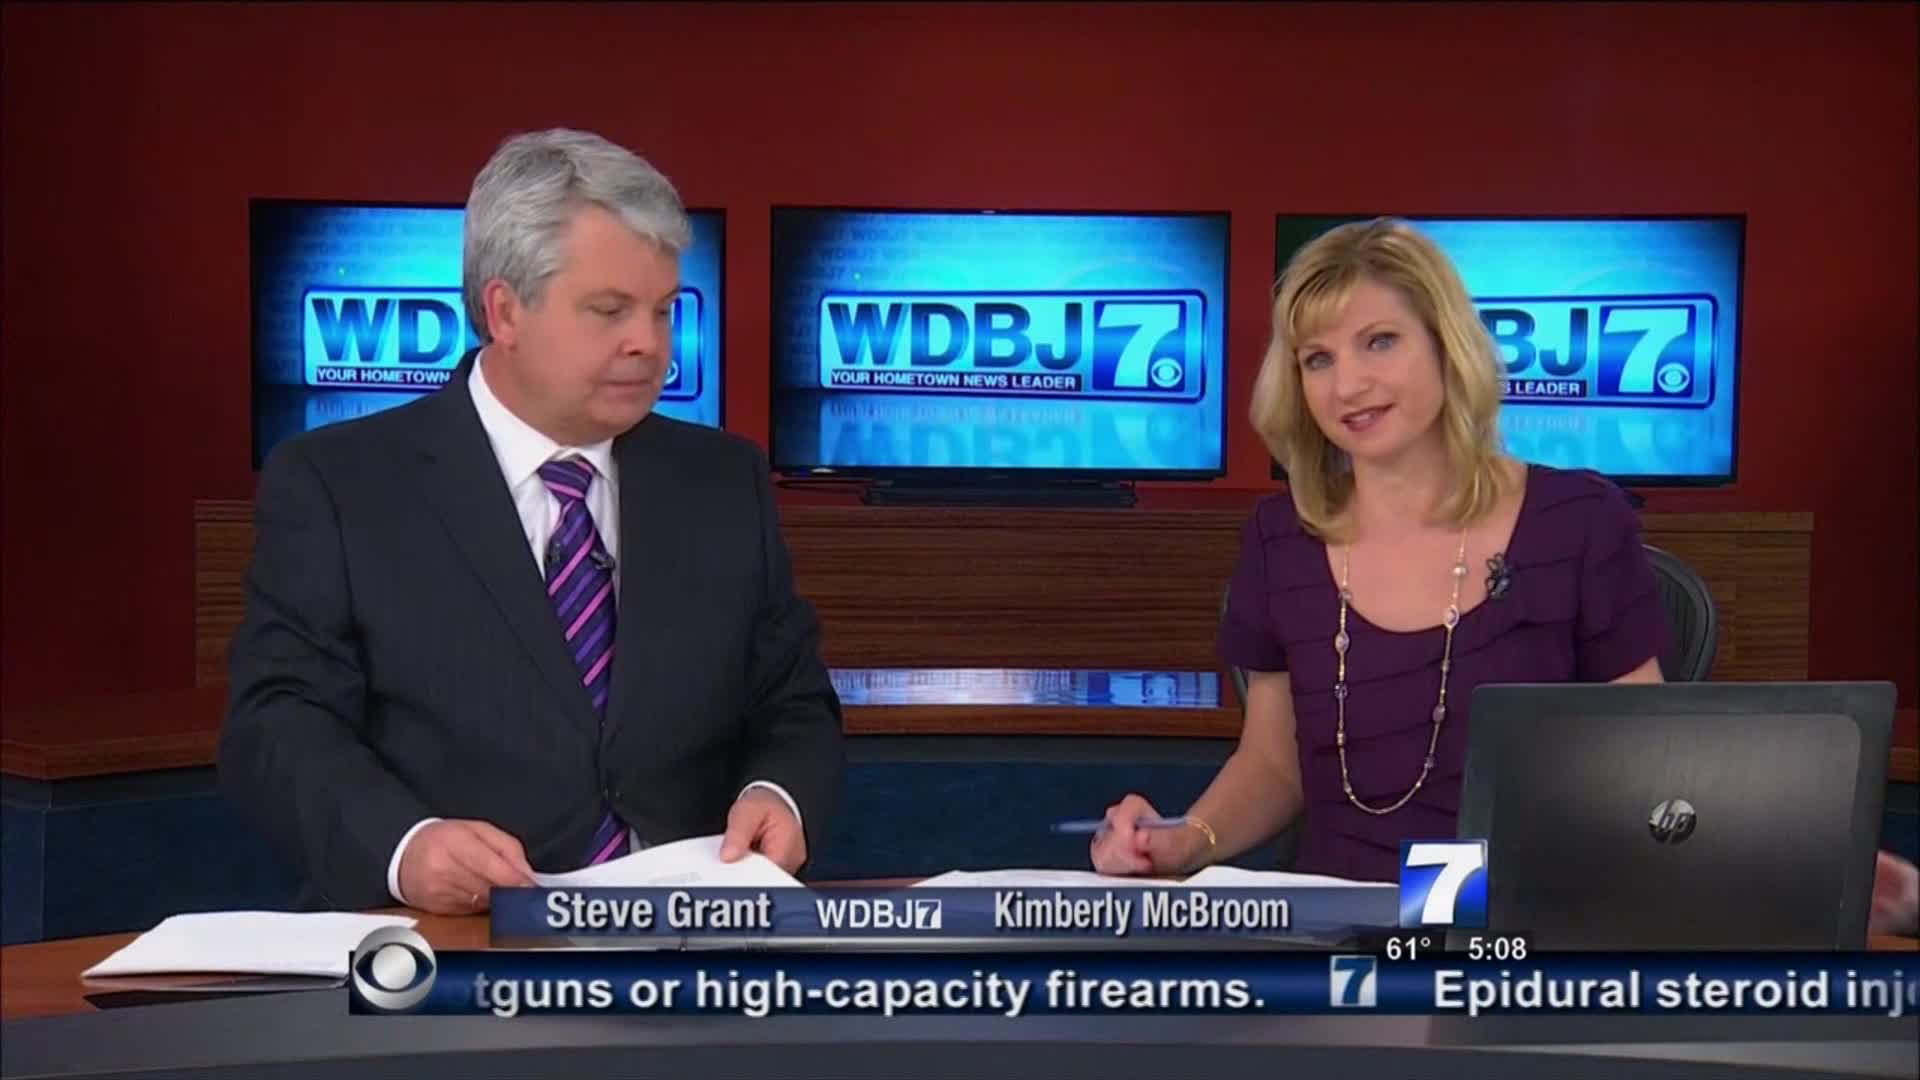 WDBJ anchors day after shooting